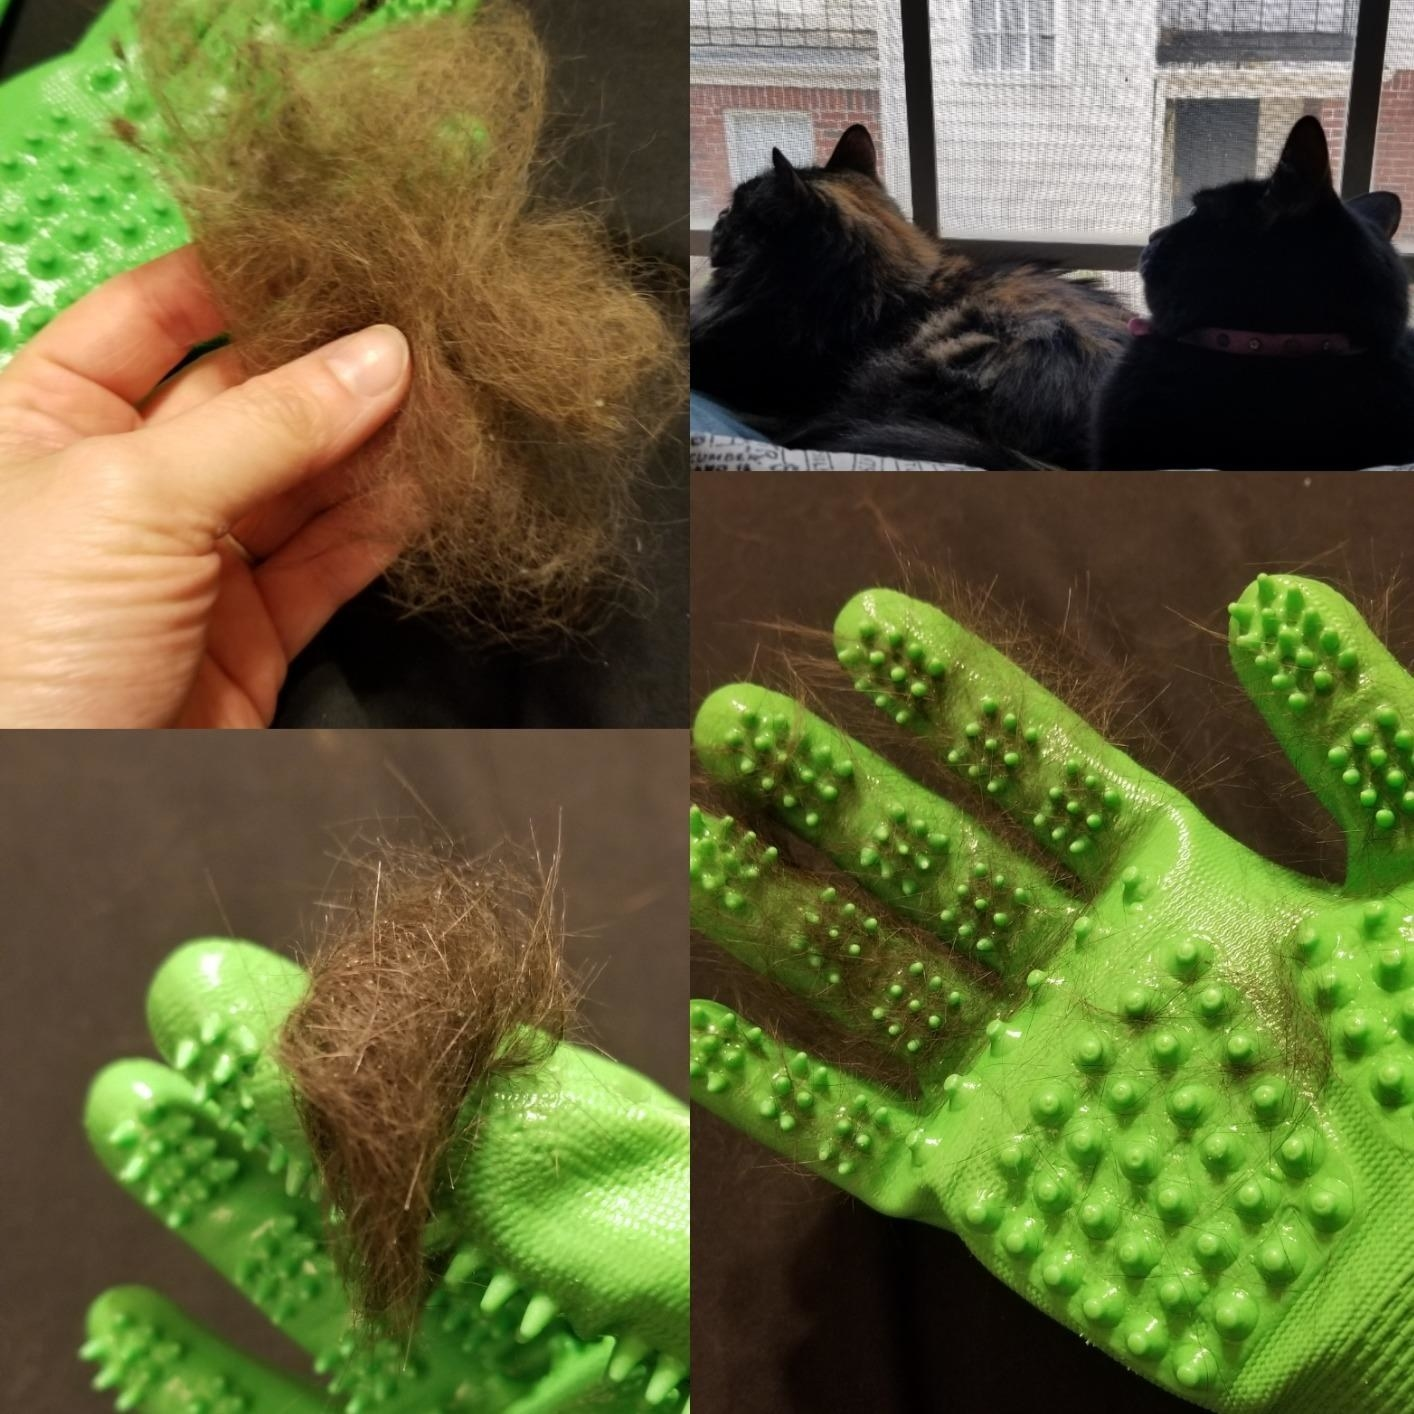 Review photo of after use of the mono-green pet grooming gloves